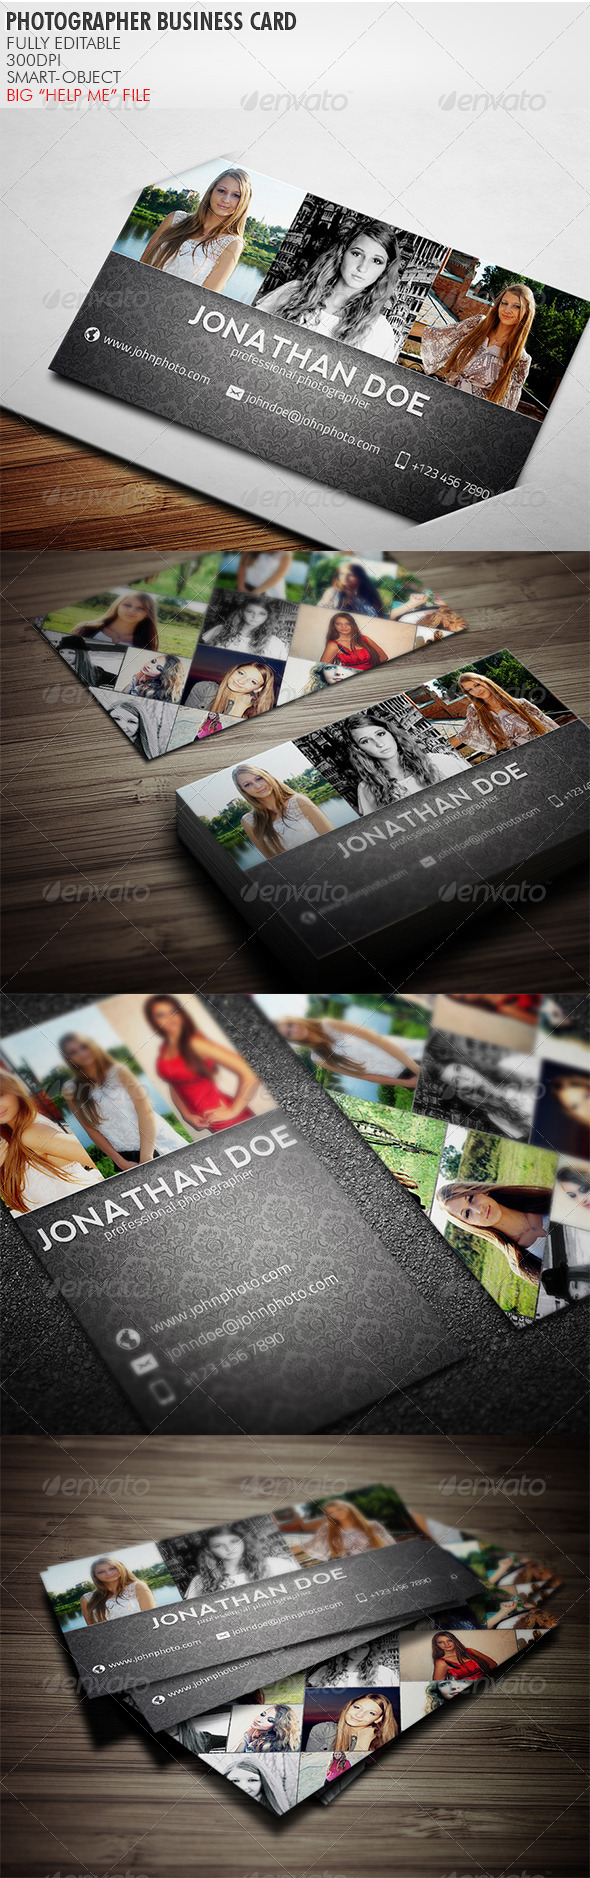 GraphicRiver Photographer Business Card 3764335